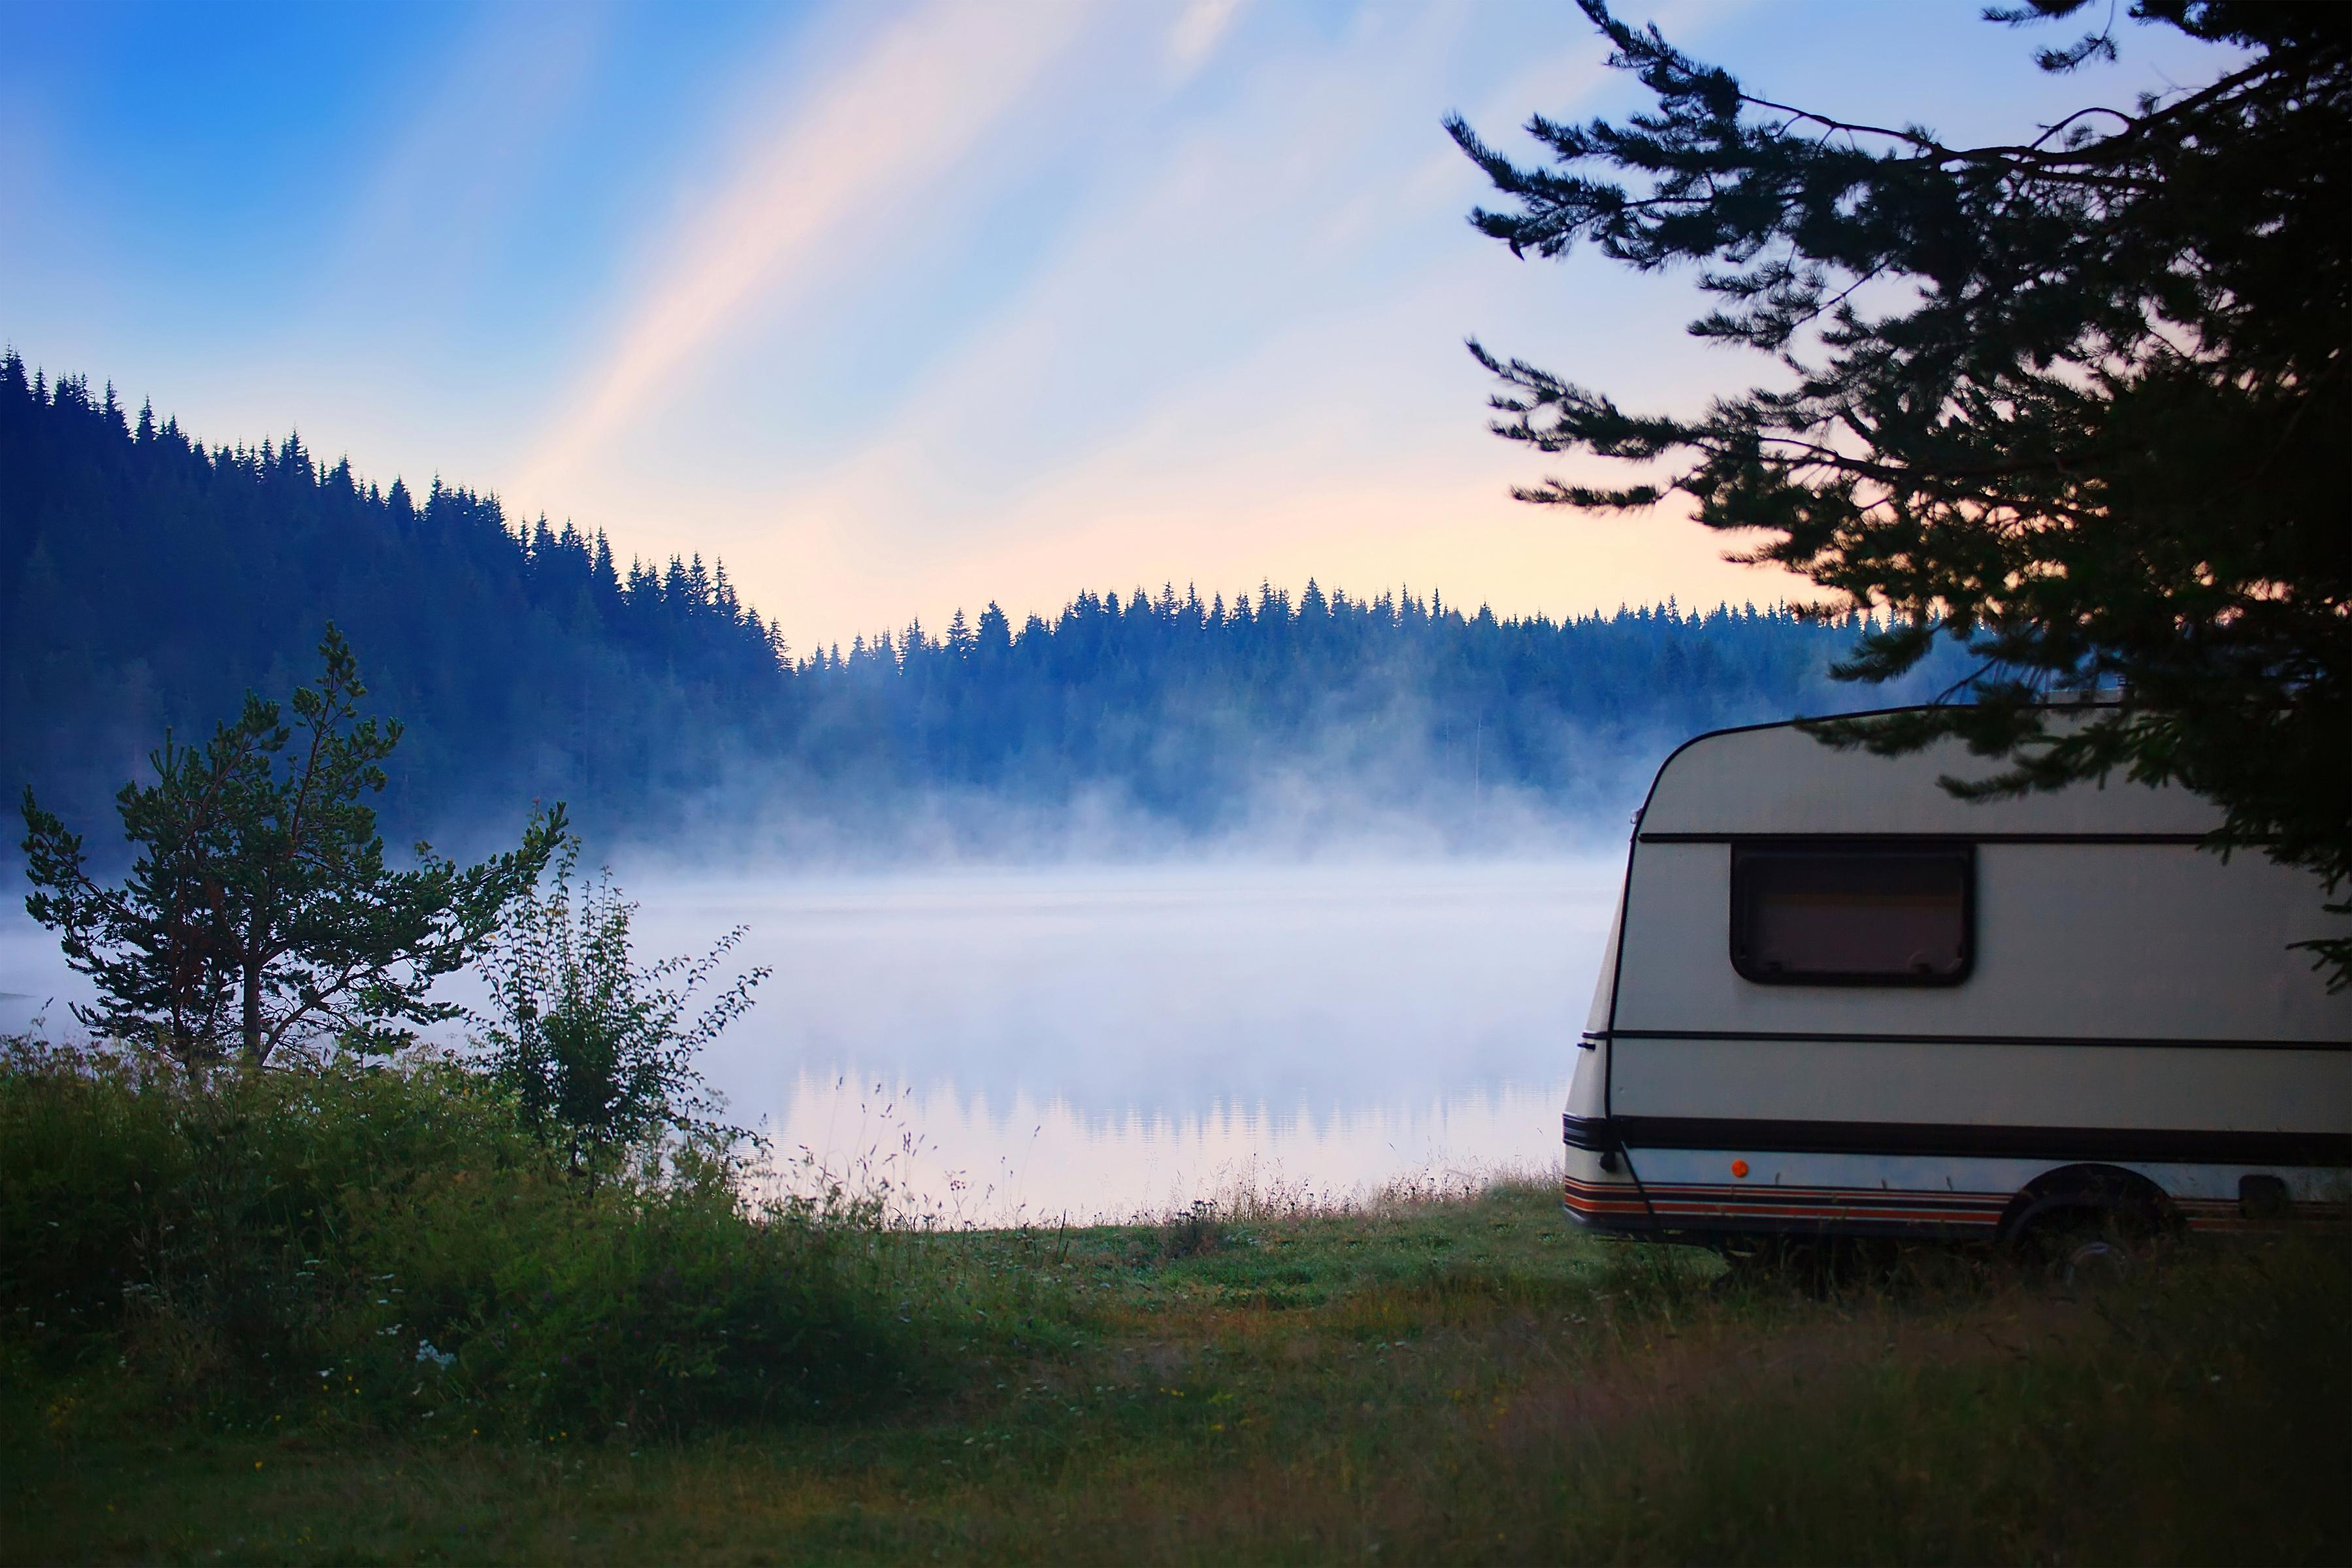 Your RV road trip can take you to just about any destination your heart desires, and it can teach you a lot along the way.